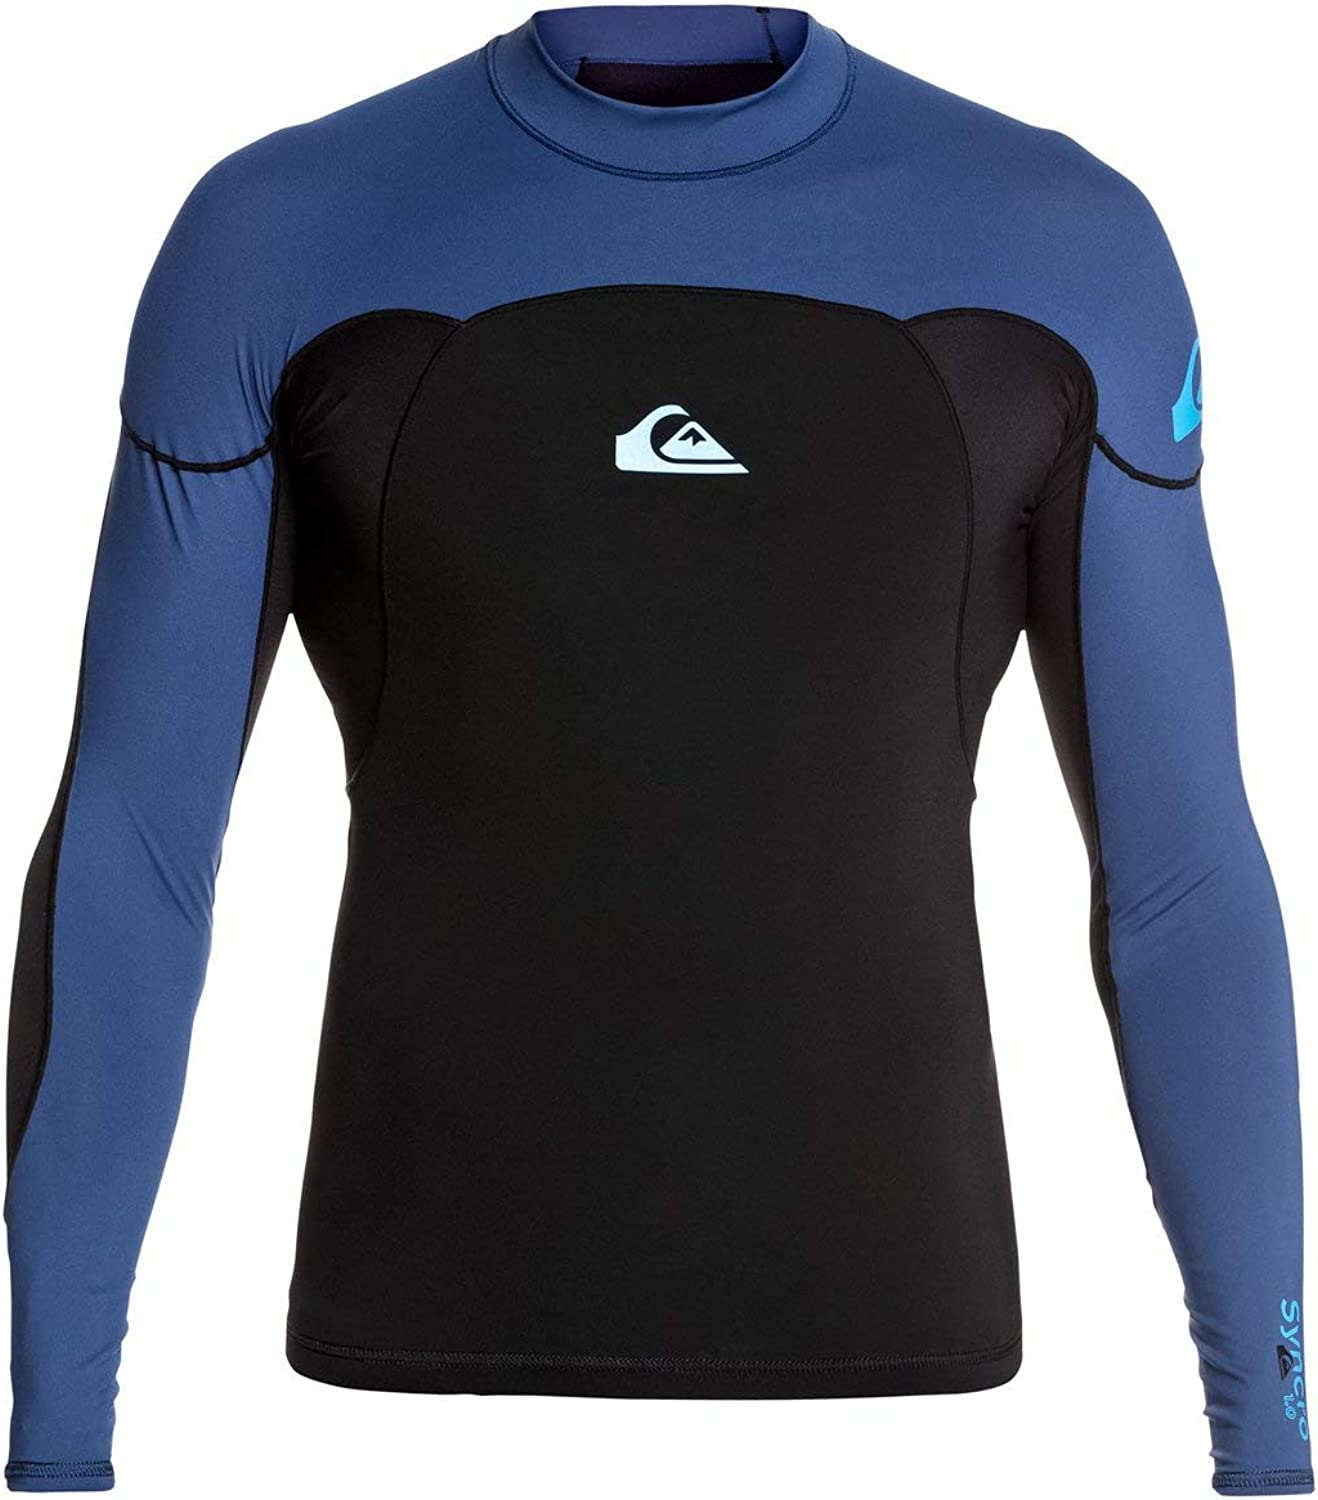 Quiksilver Mens Syncro 1mm Neoshirt Black L Lycra? - Blue Mail order outlet Iodine